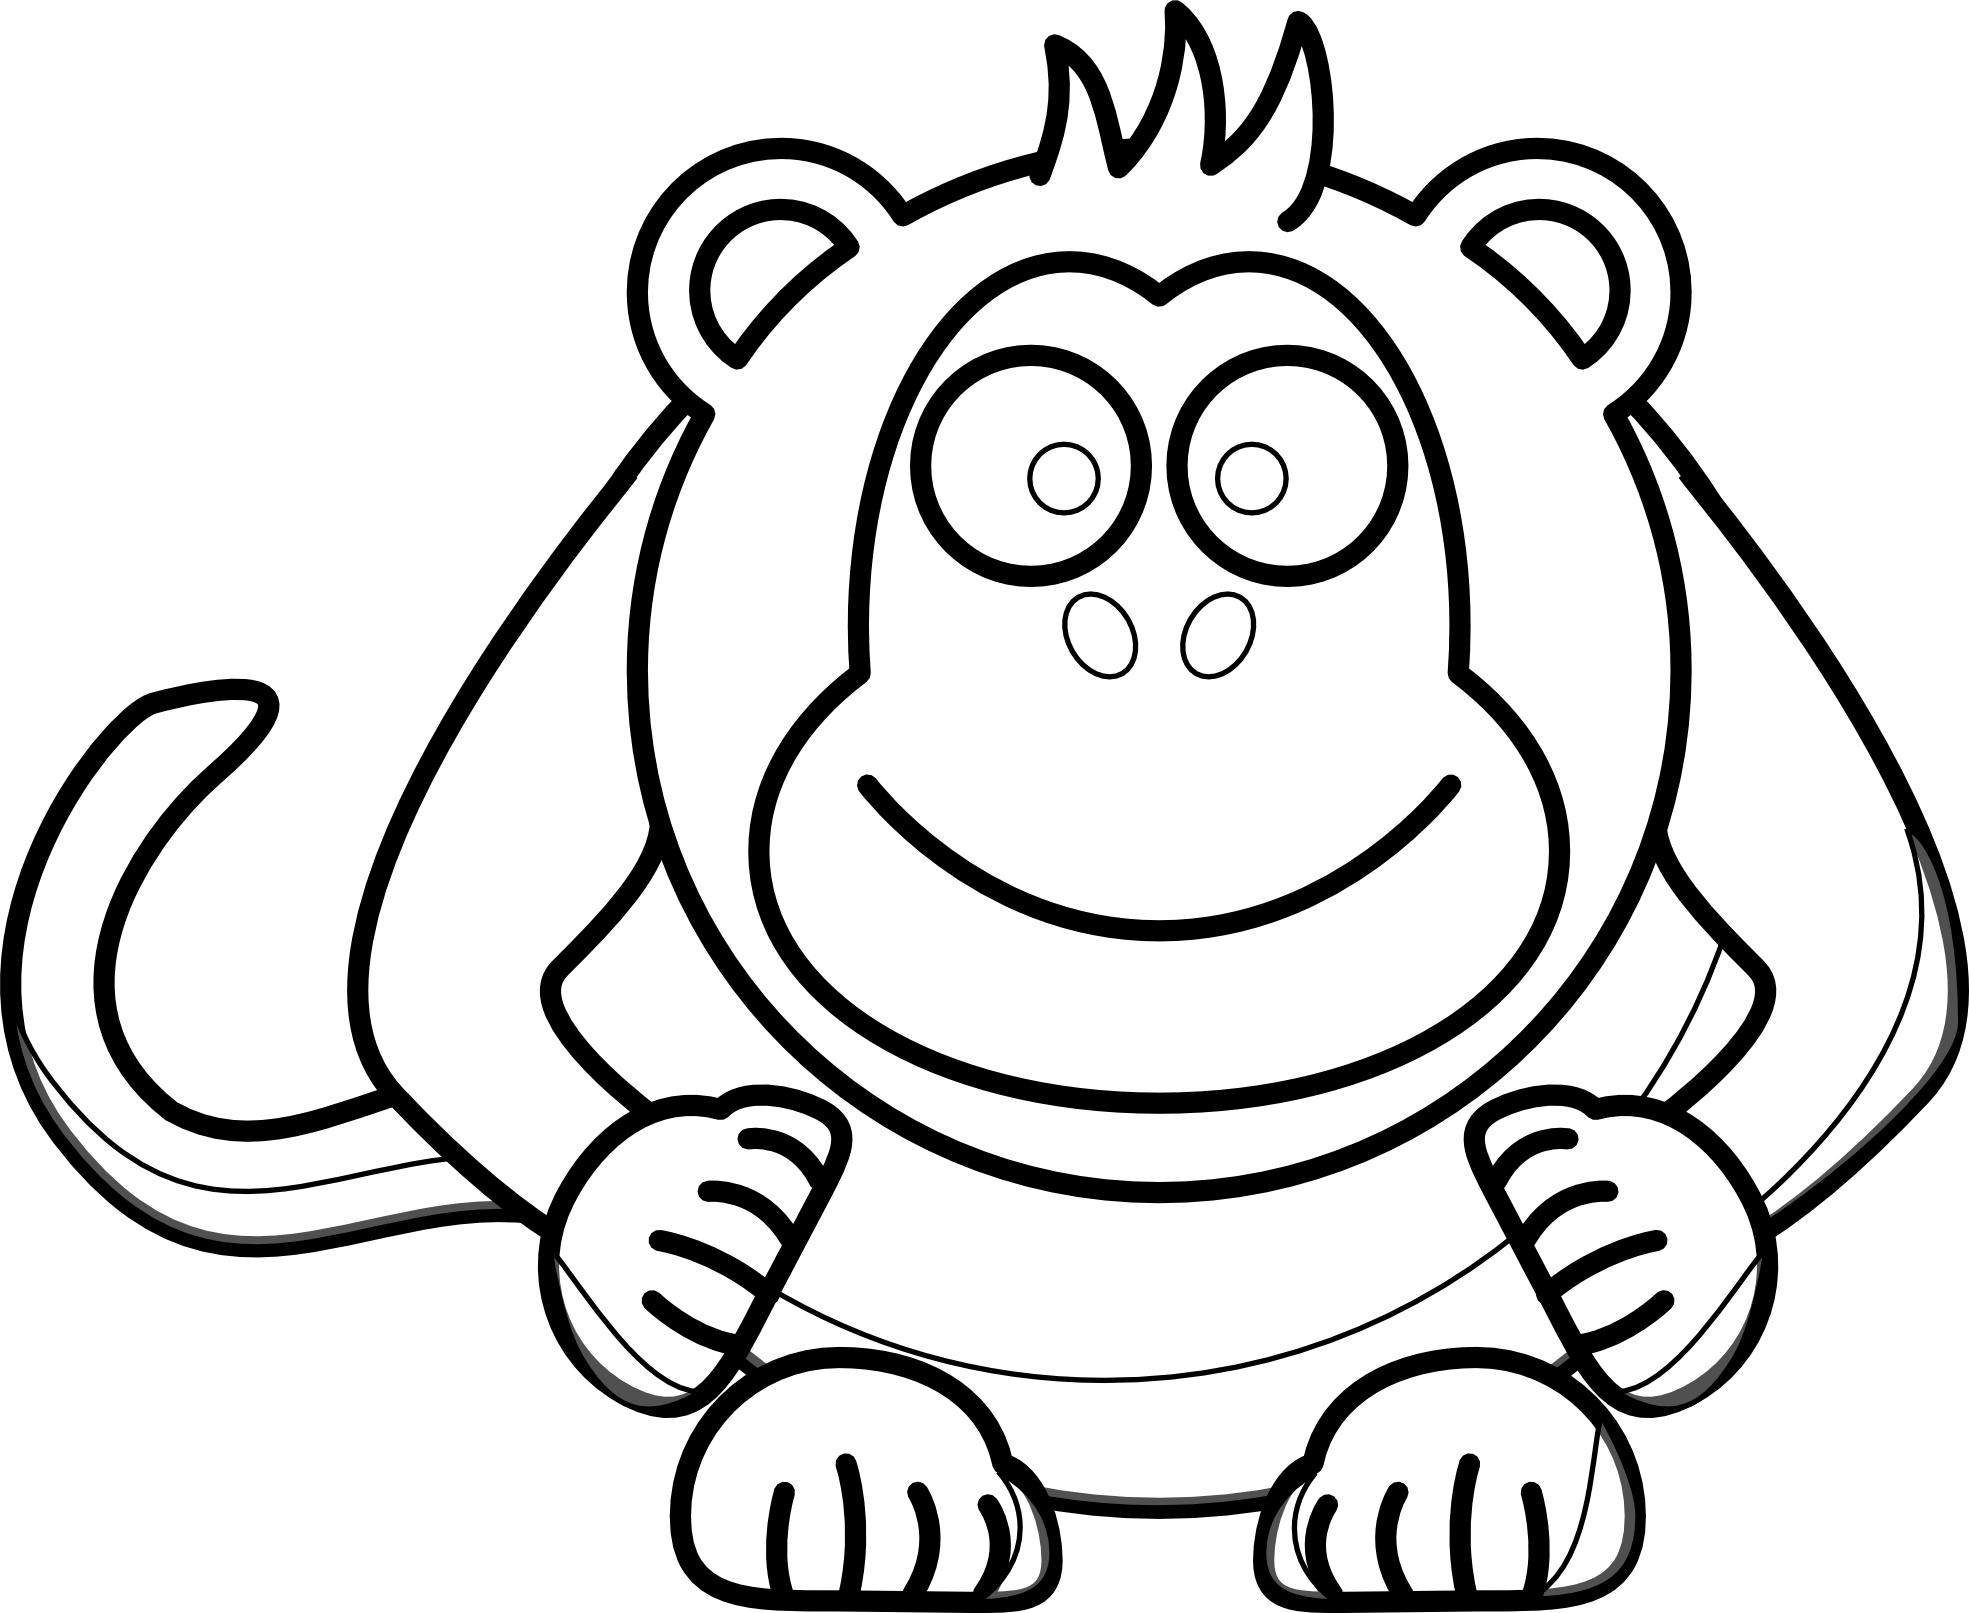 Baby book clipart free image transparent stock Baby Monkey Face Clip Art | Clipart Panda - Free Clipart Images image transparent stock